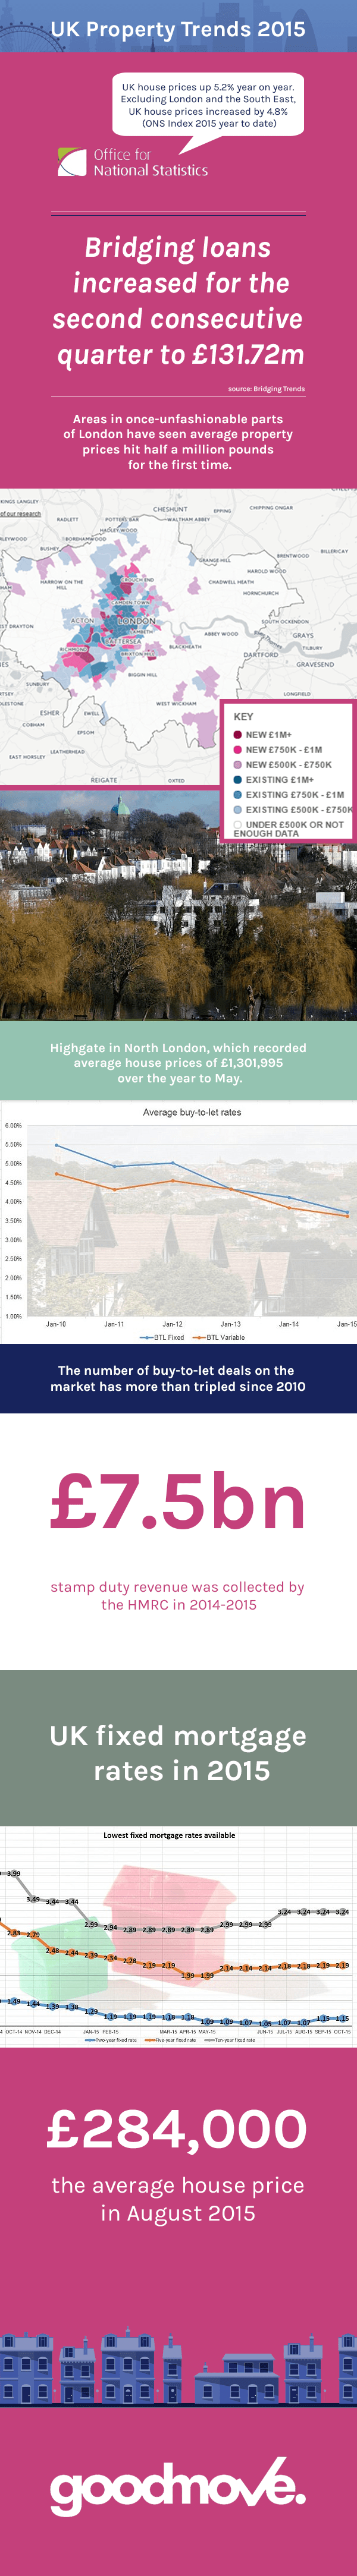 The latest 2015 Property Trends UK